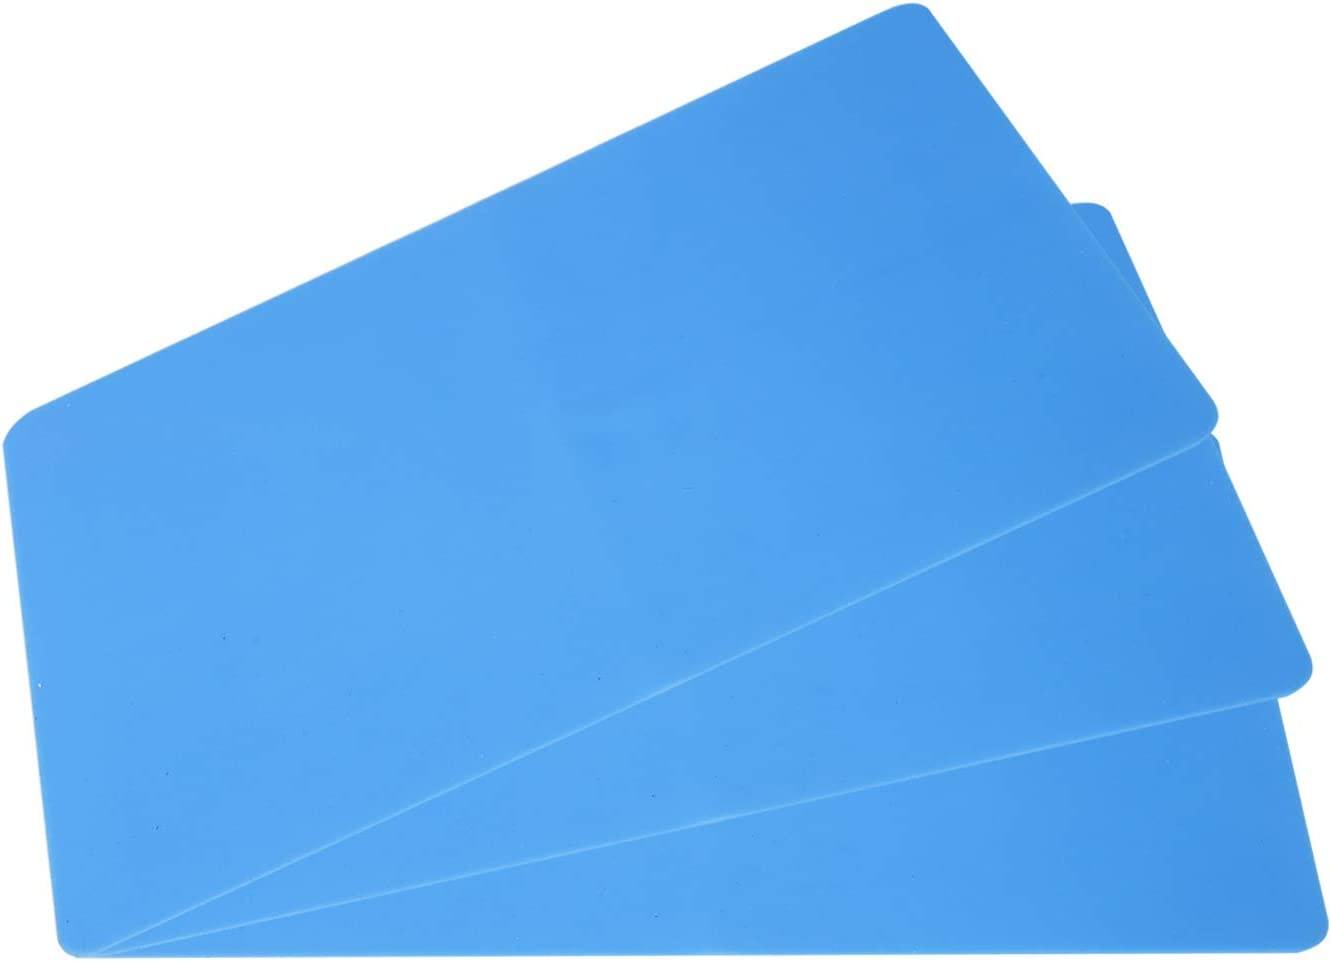 3 PCS Silicone Sheet for Crafts Jewelry Casting Molds Mat, Food Grade 15.7 in x 11.8 in, Blue (Big)